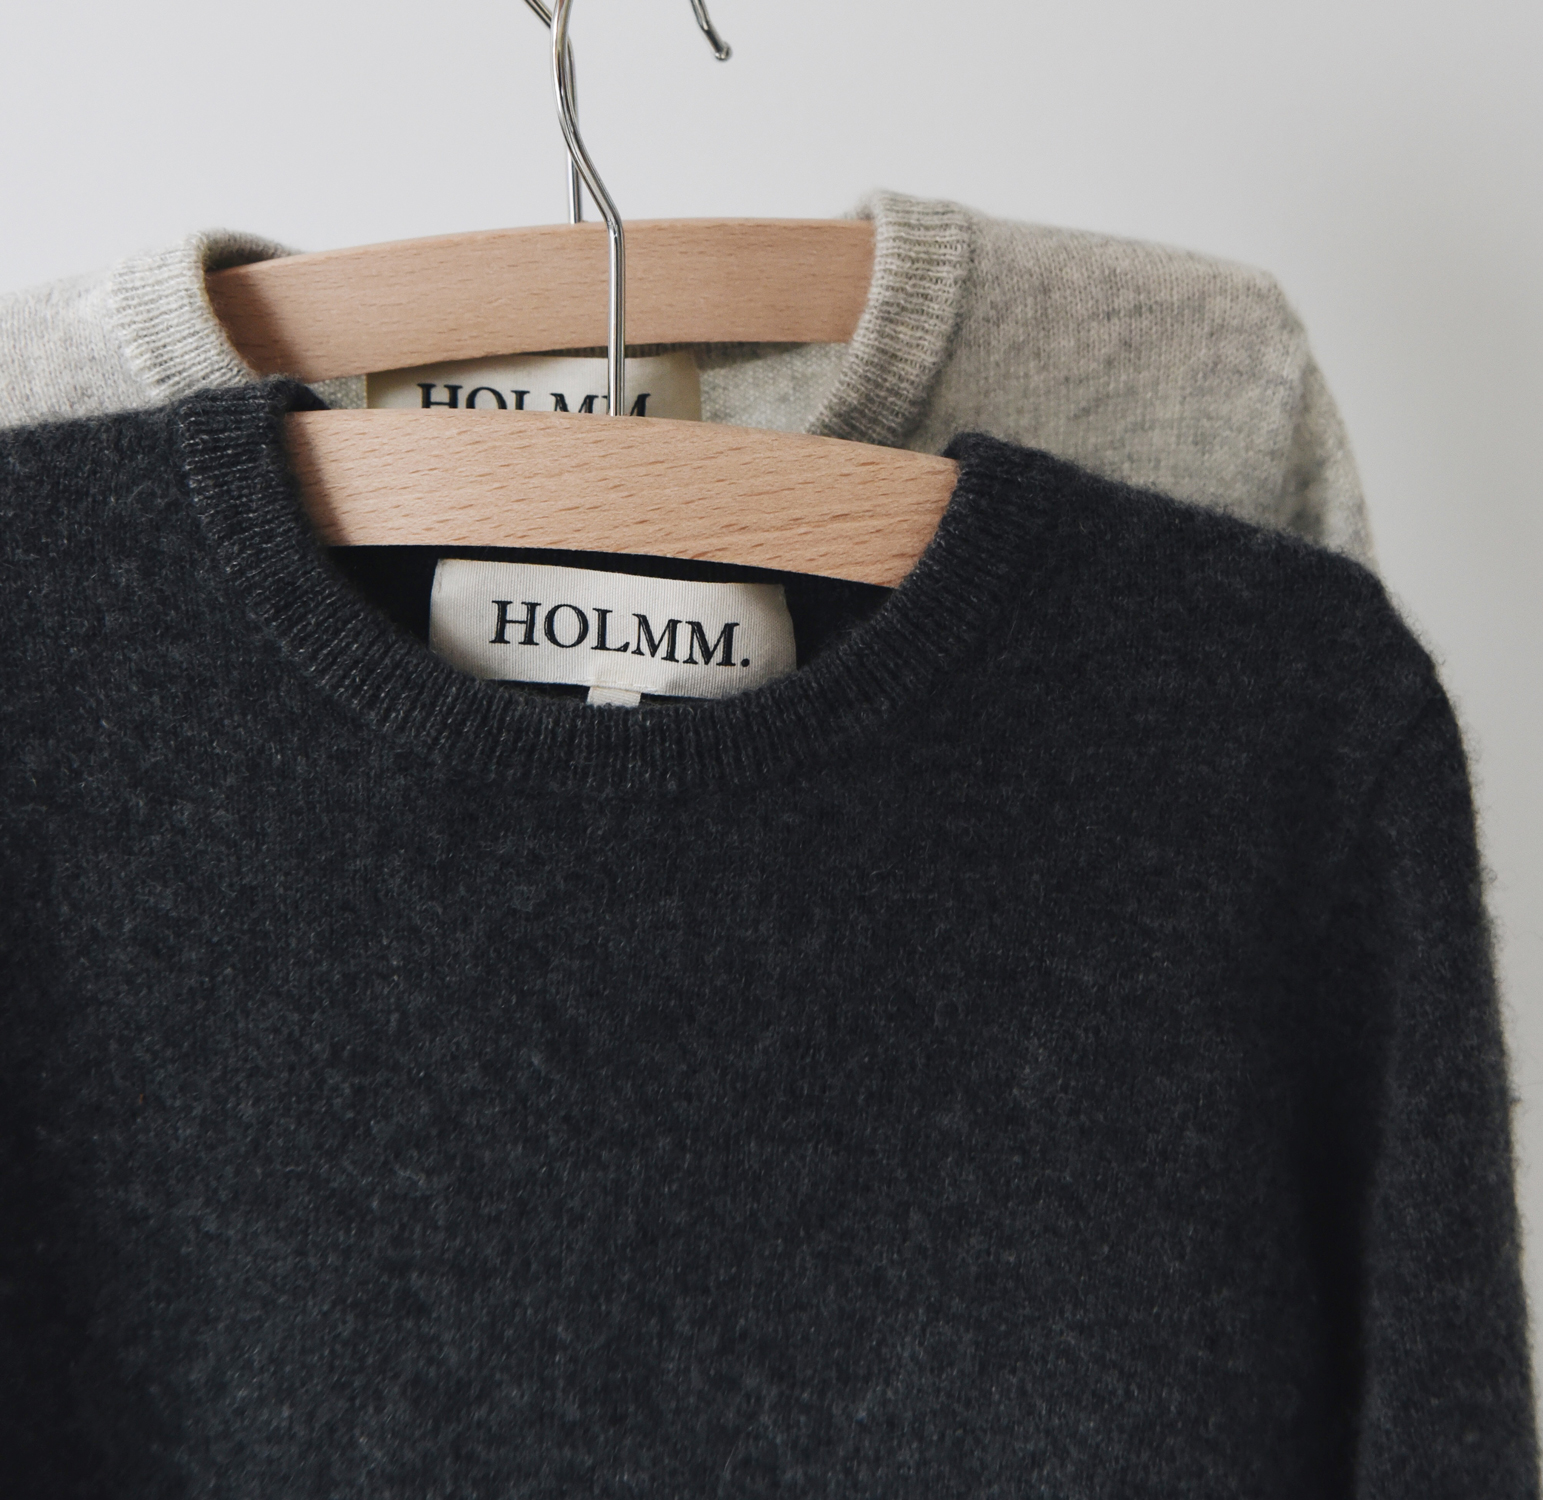 Some of Stephanie's favourite kids clothing brands are  Holmm ,  Bonton ,  Caramel , and  Co.Label .